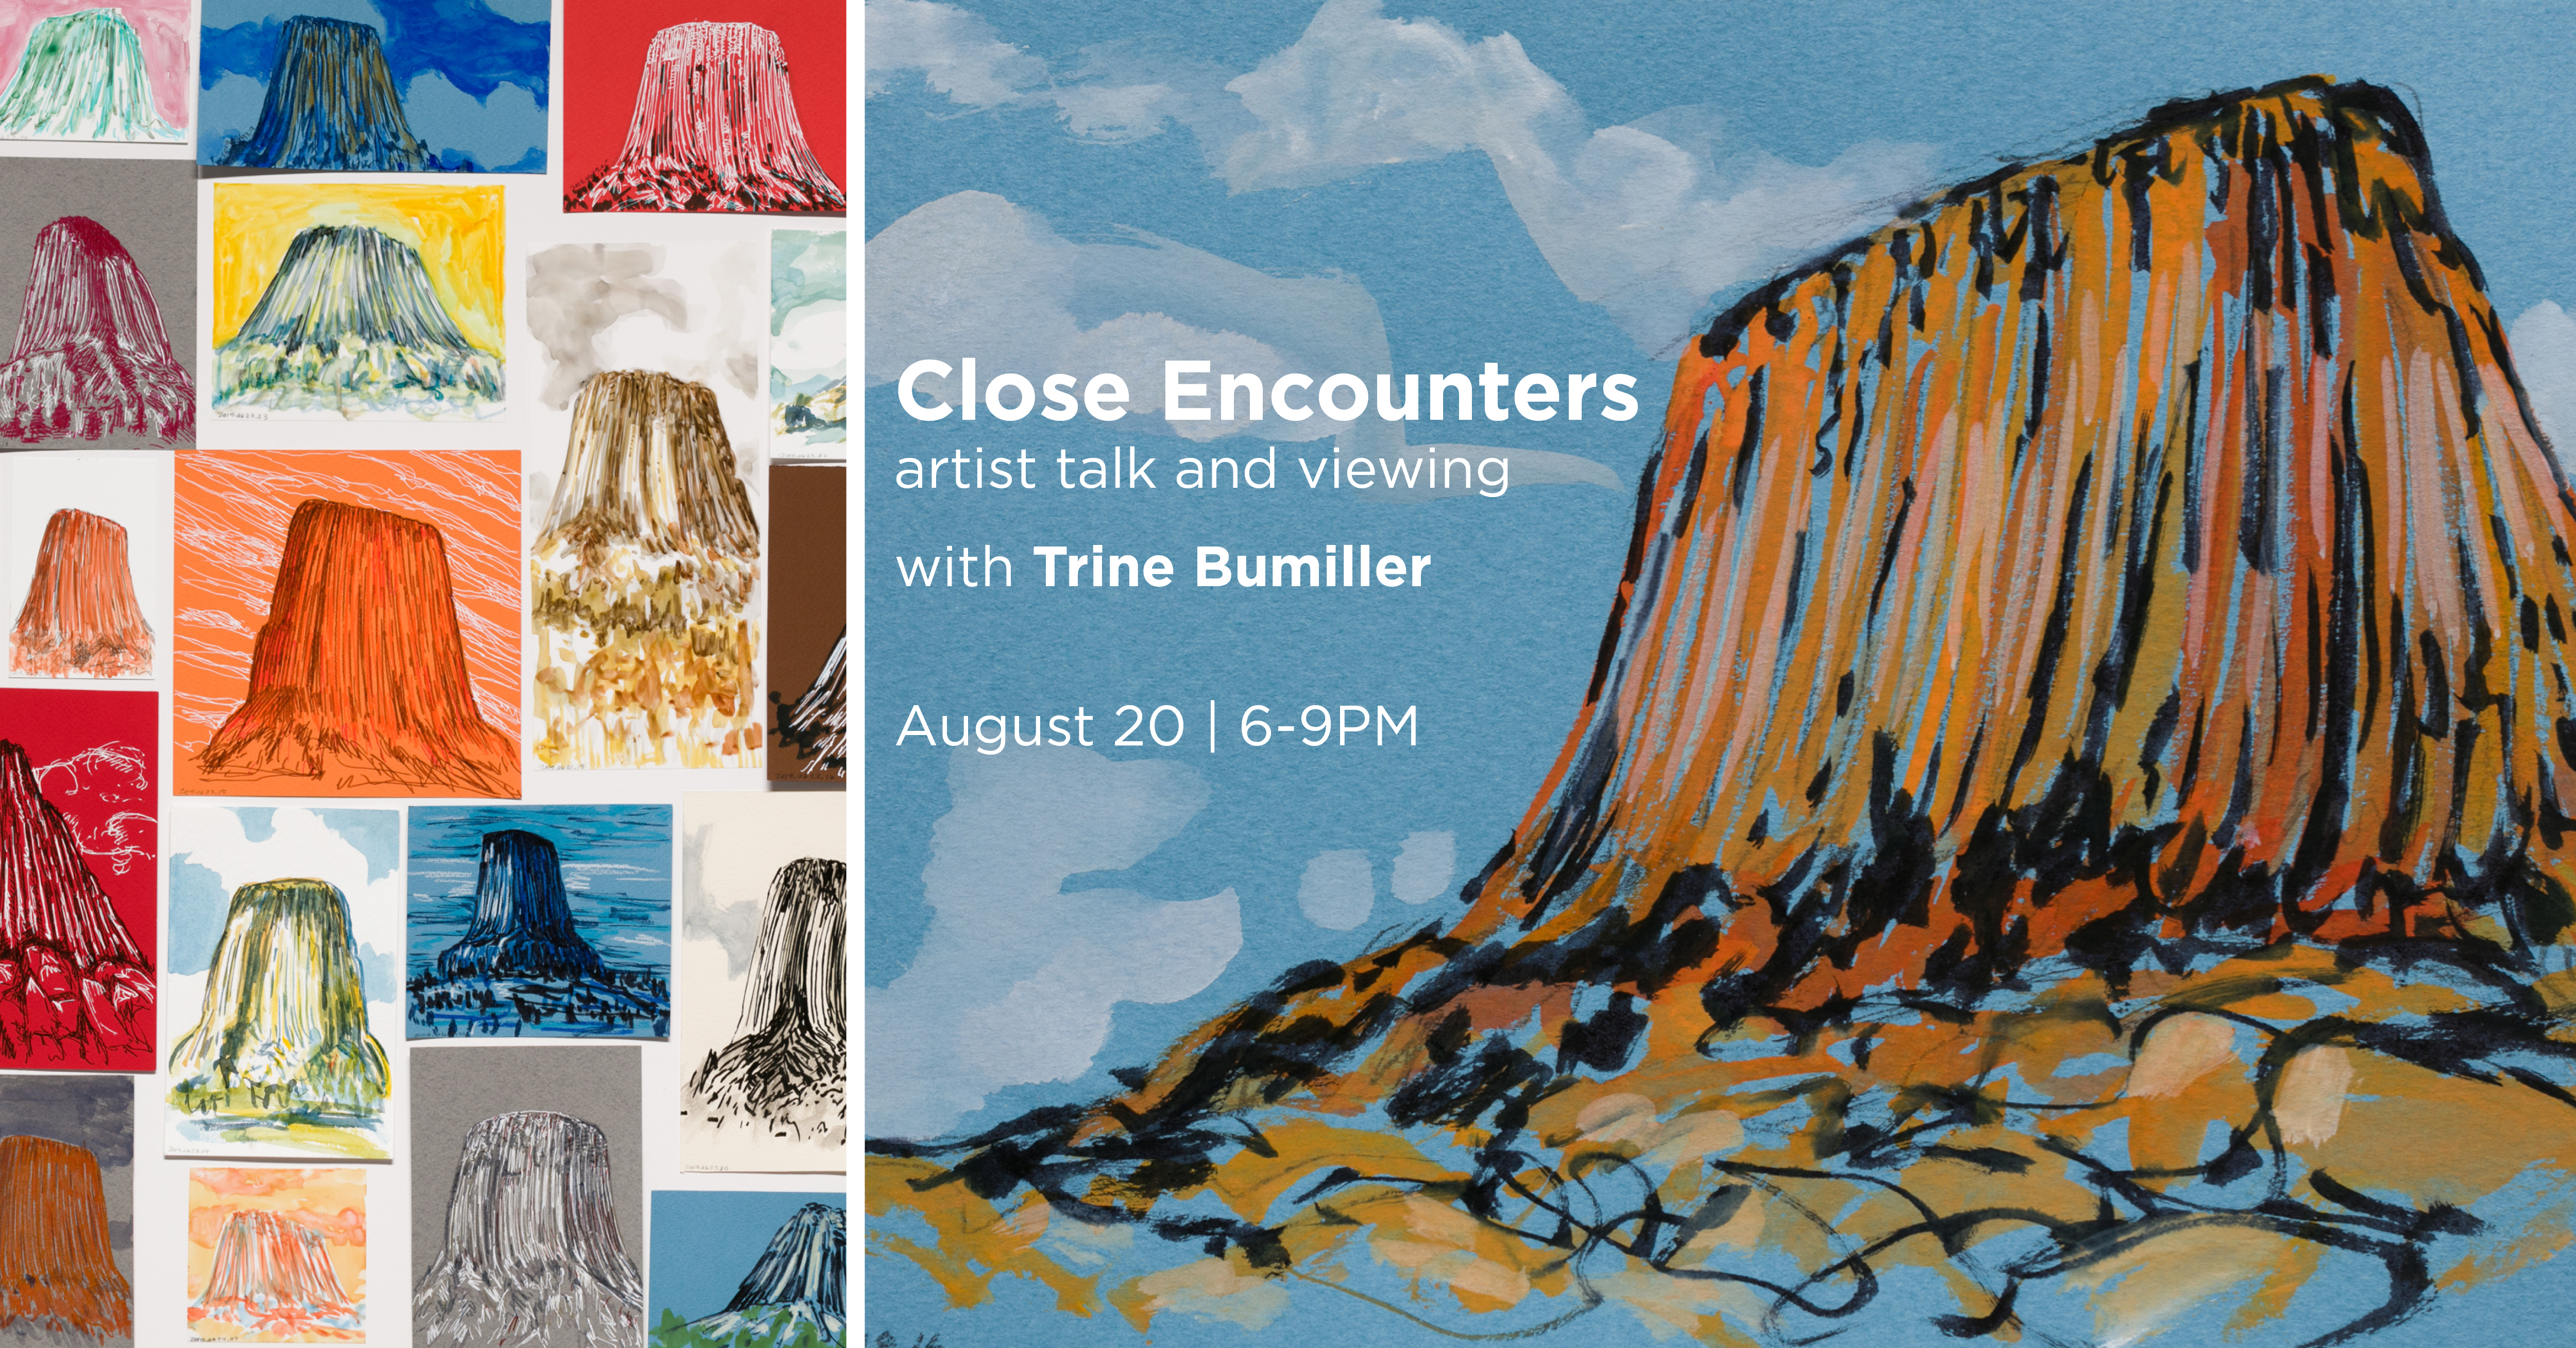 Close Encounters artist demo and movie viewing with Trine Bumiller